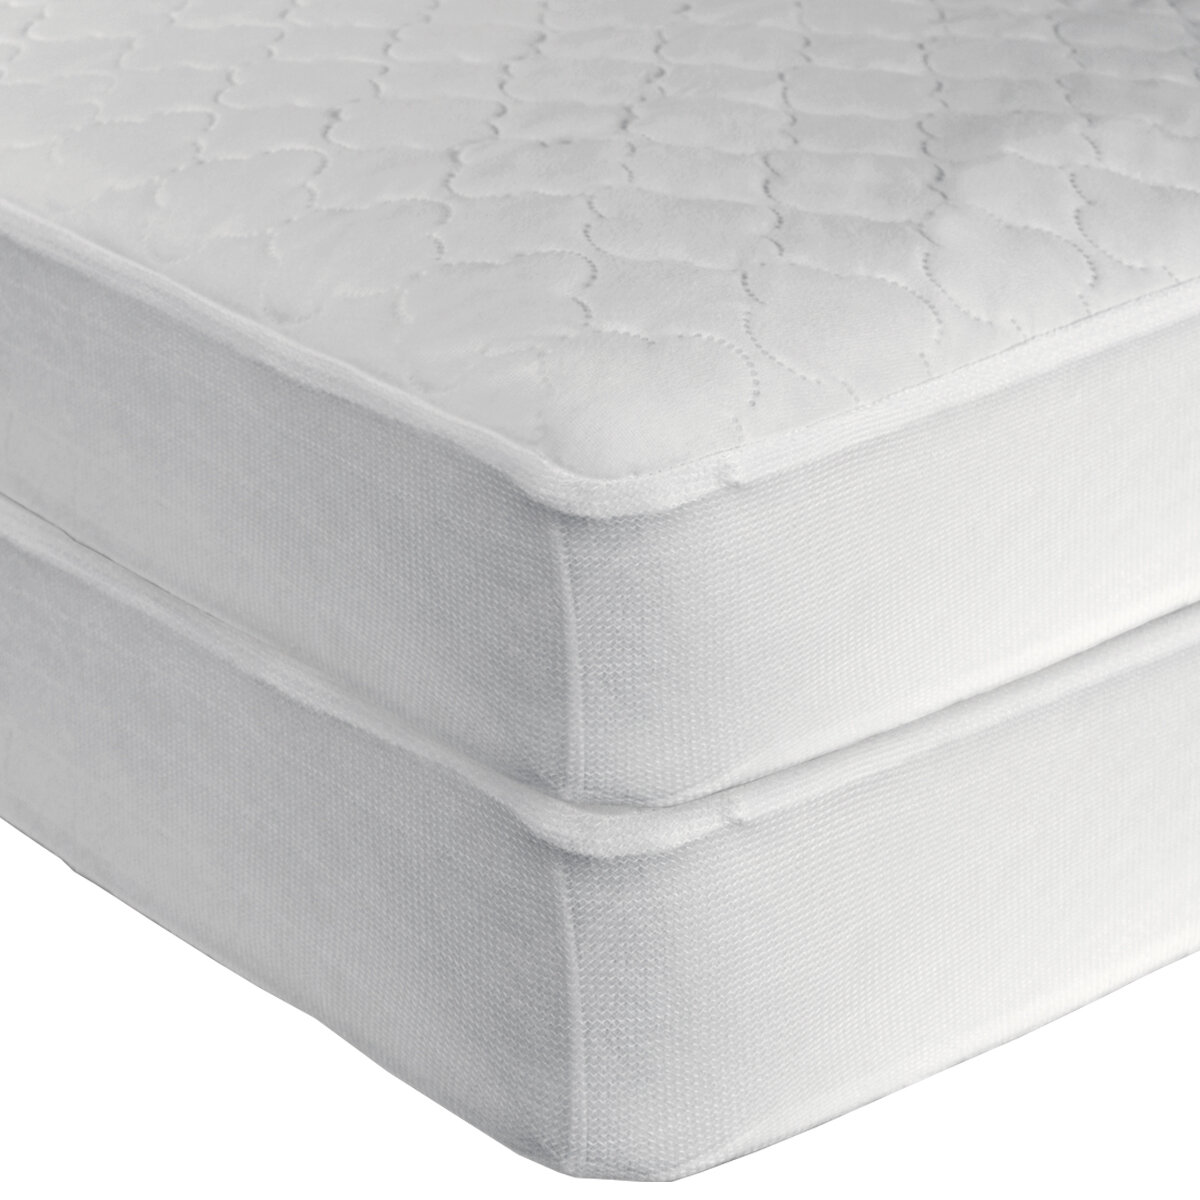 Very Helpful Crib Mattress Pad Sealy Waterproof Crib Mattress Pad u0026 Reviews | Wayfair